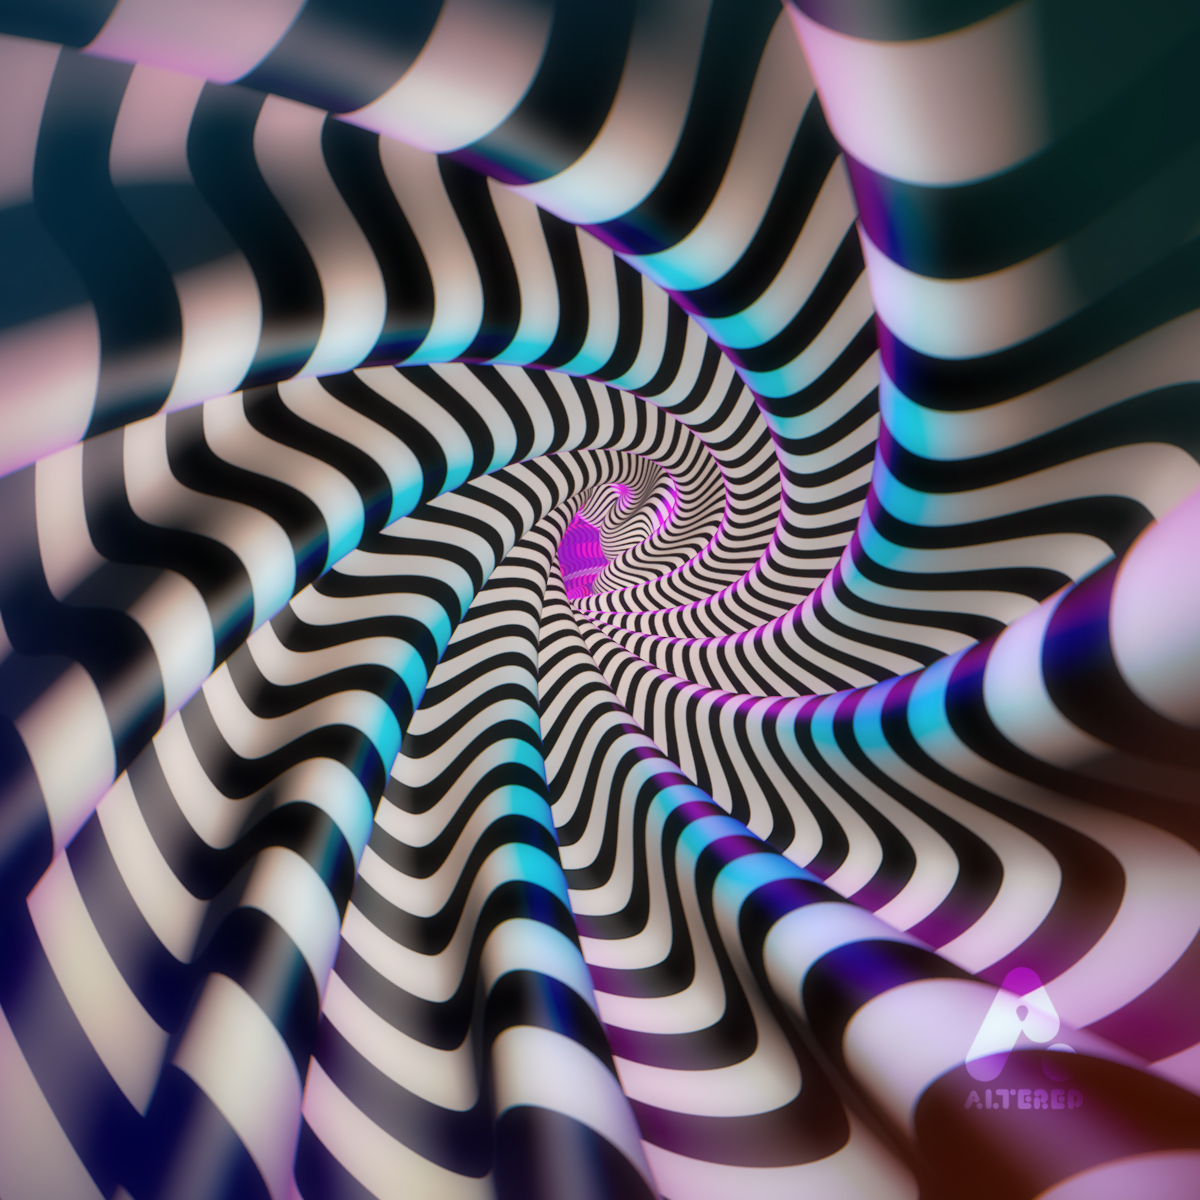 3D cg image of stripy optical illusion tube